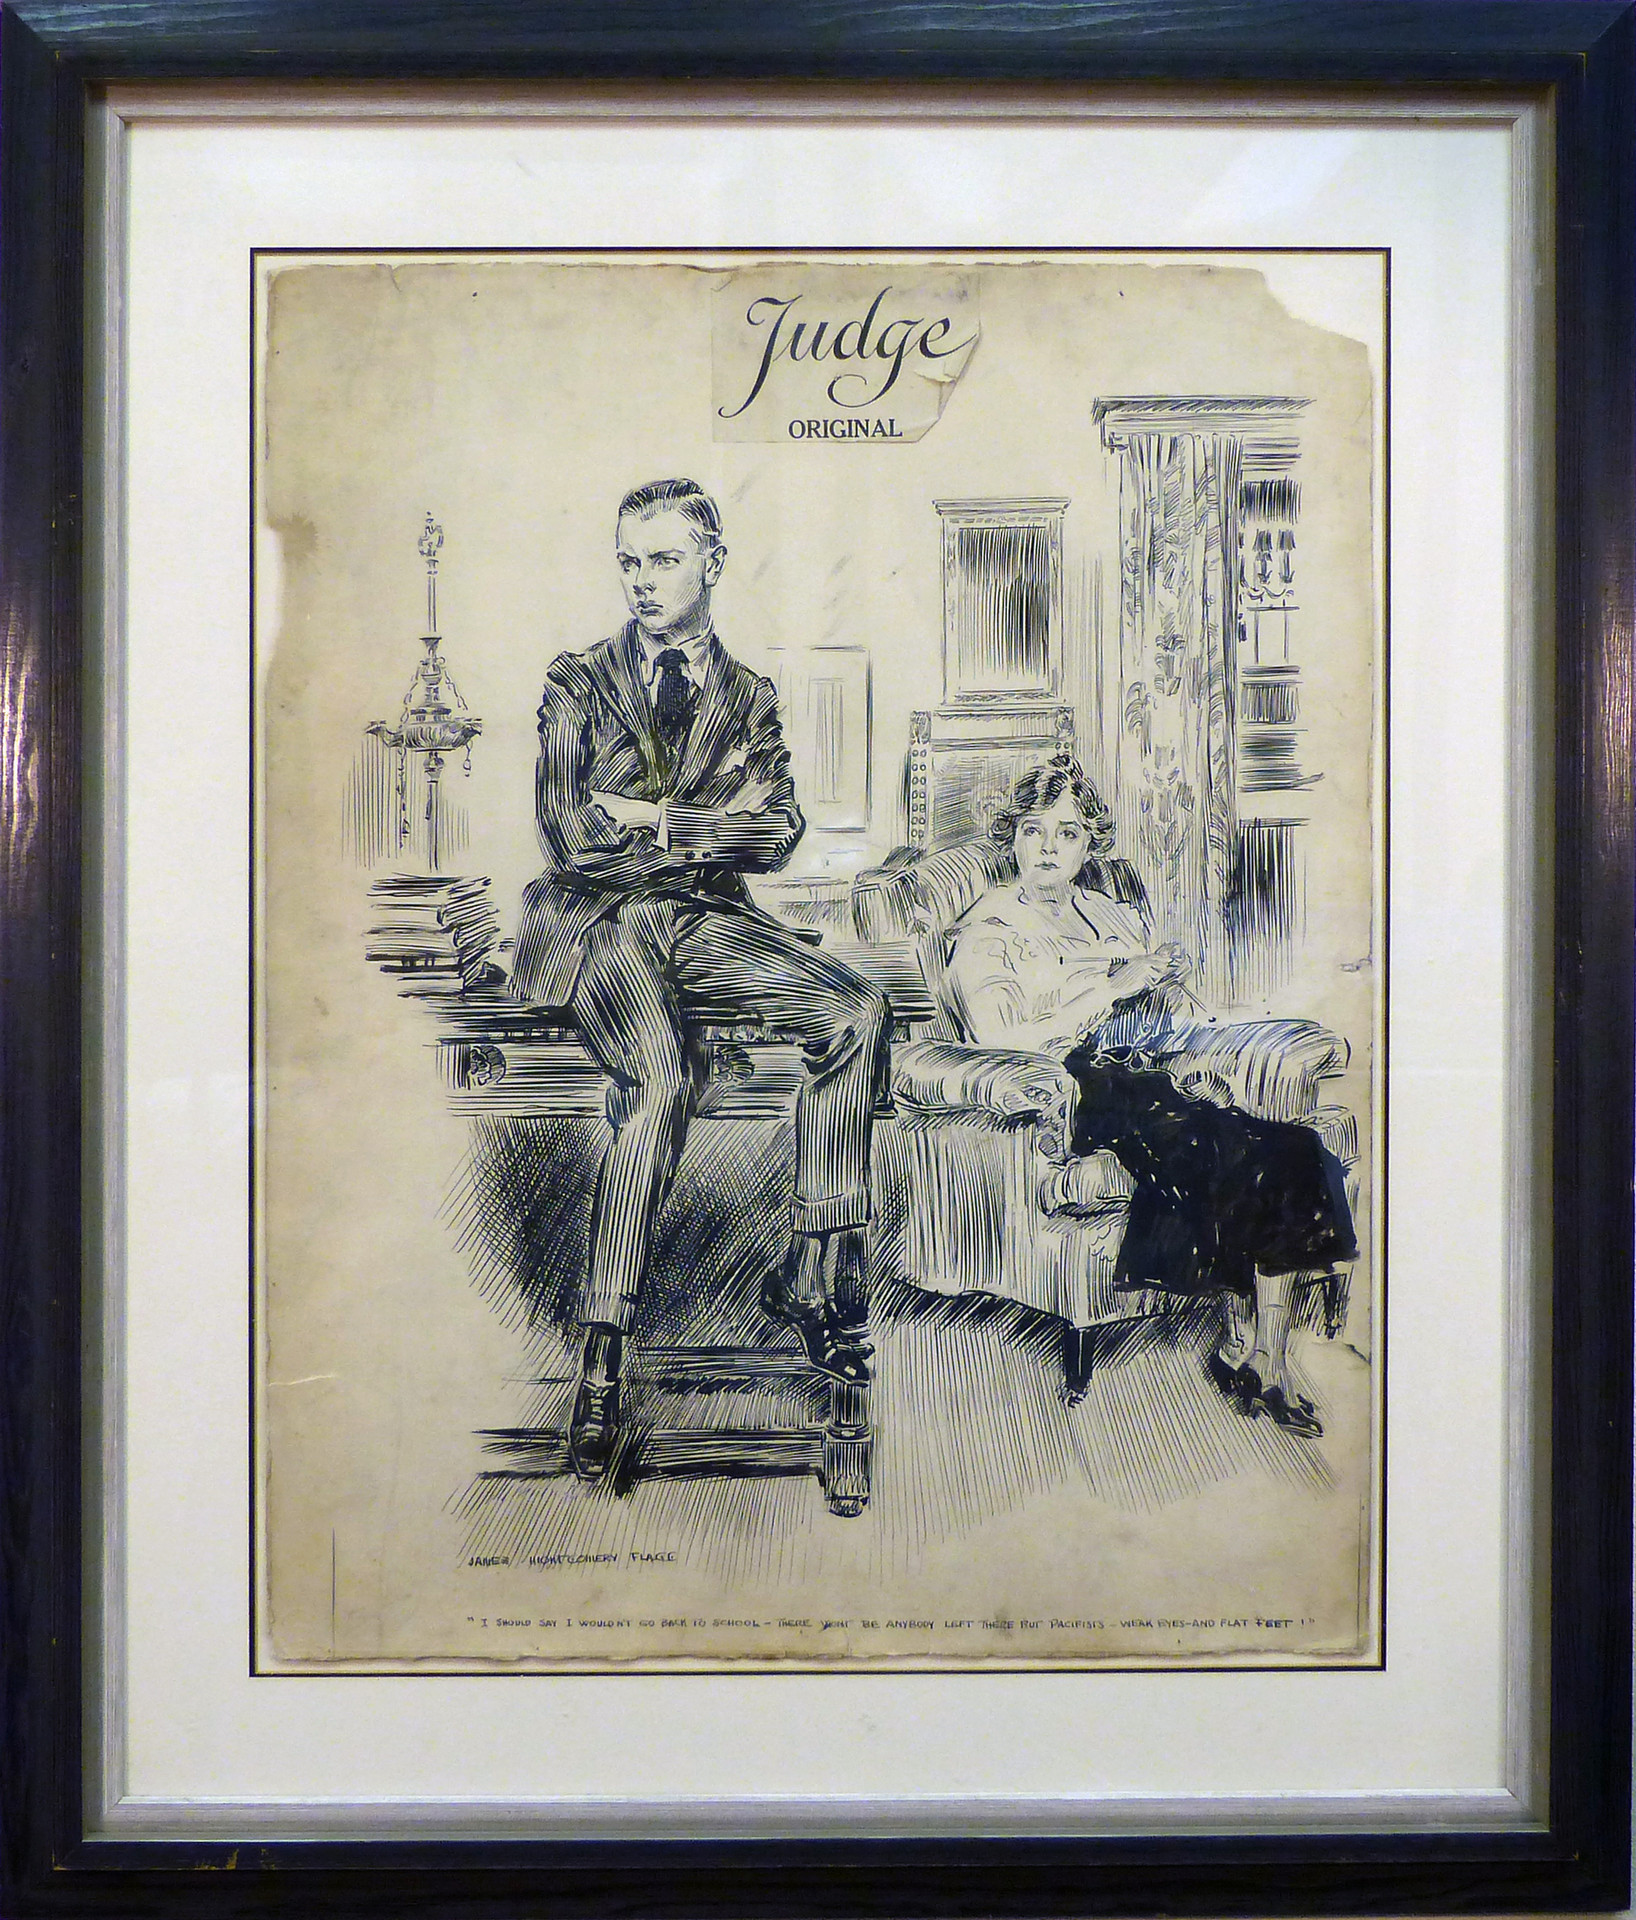 I should say I wouldn't go back to school… Judge Magazine Mixed media on paper 28 1/2 x 22 1/2 in. 40 1/4 x 34 in. framed Hand-signed